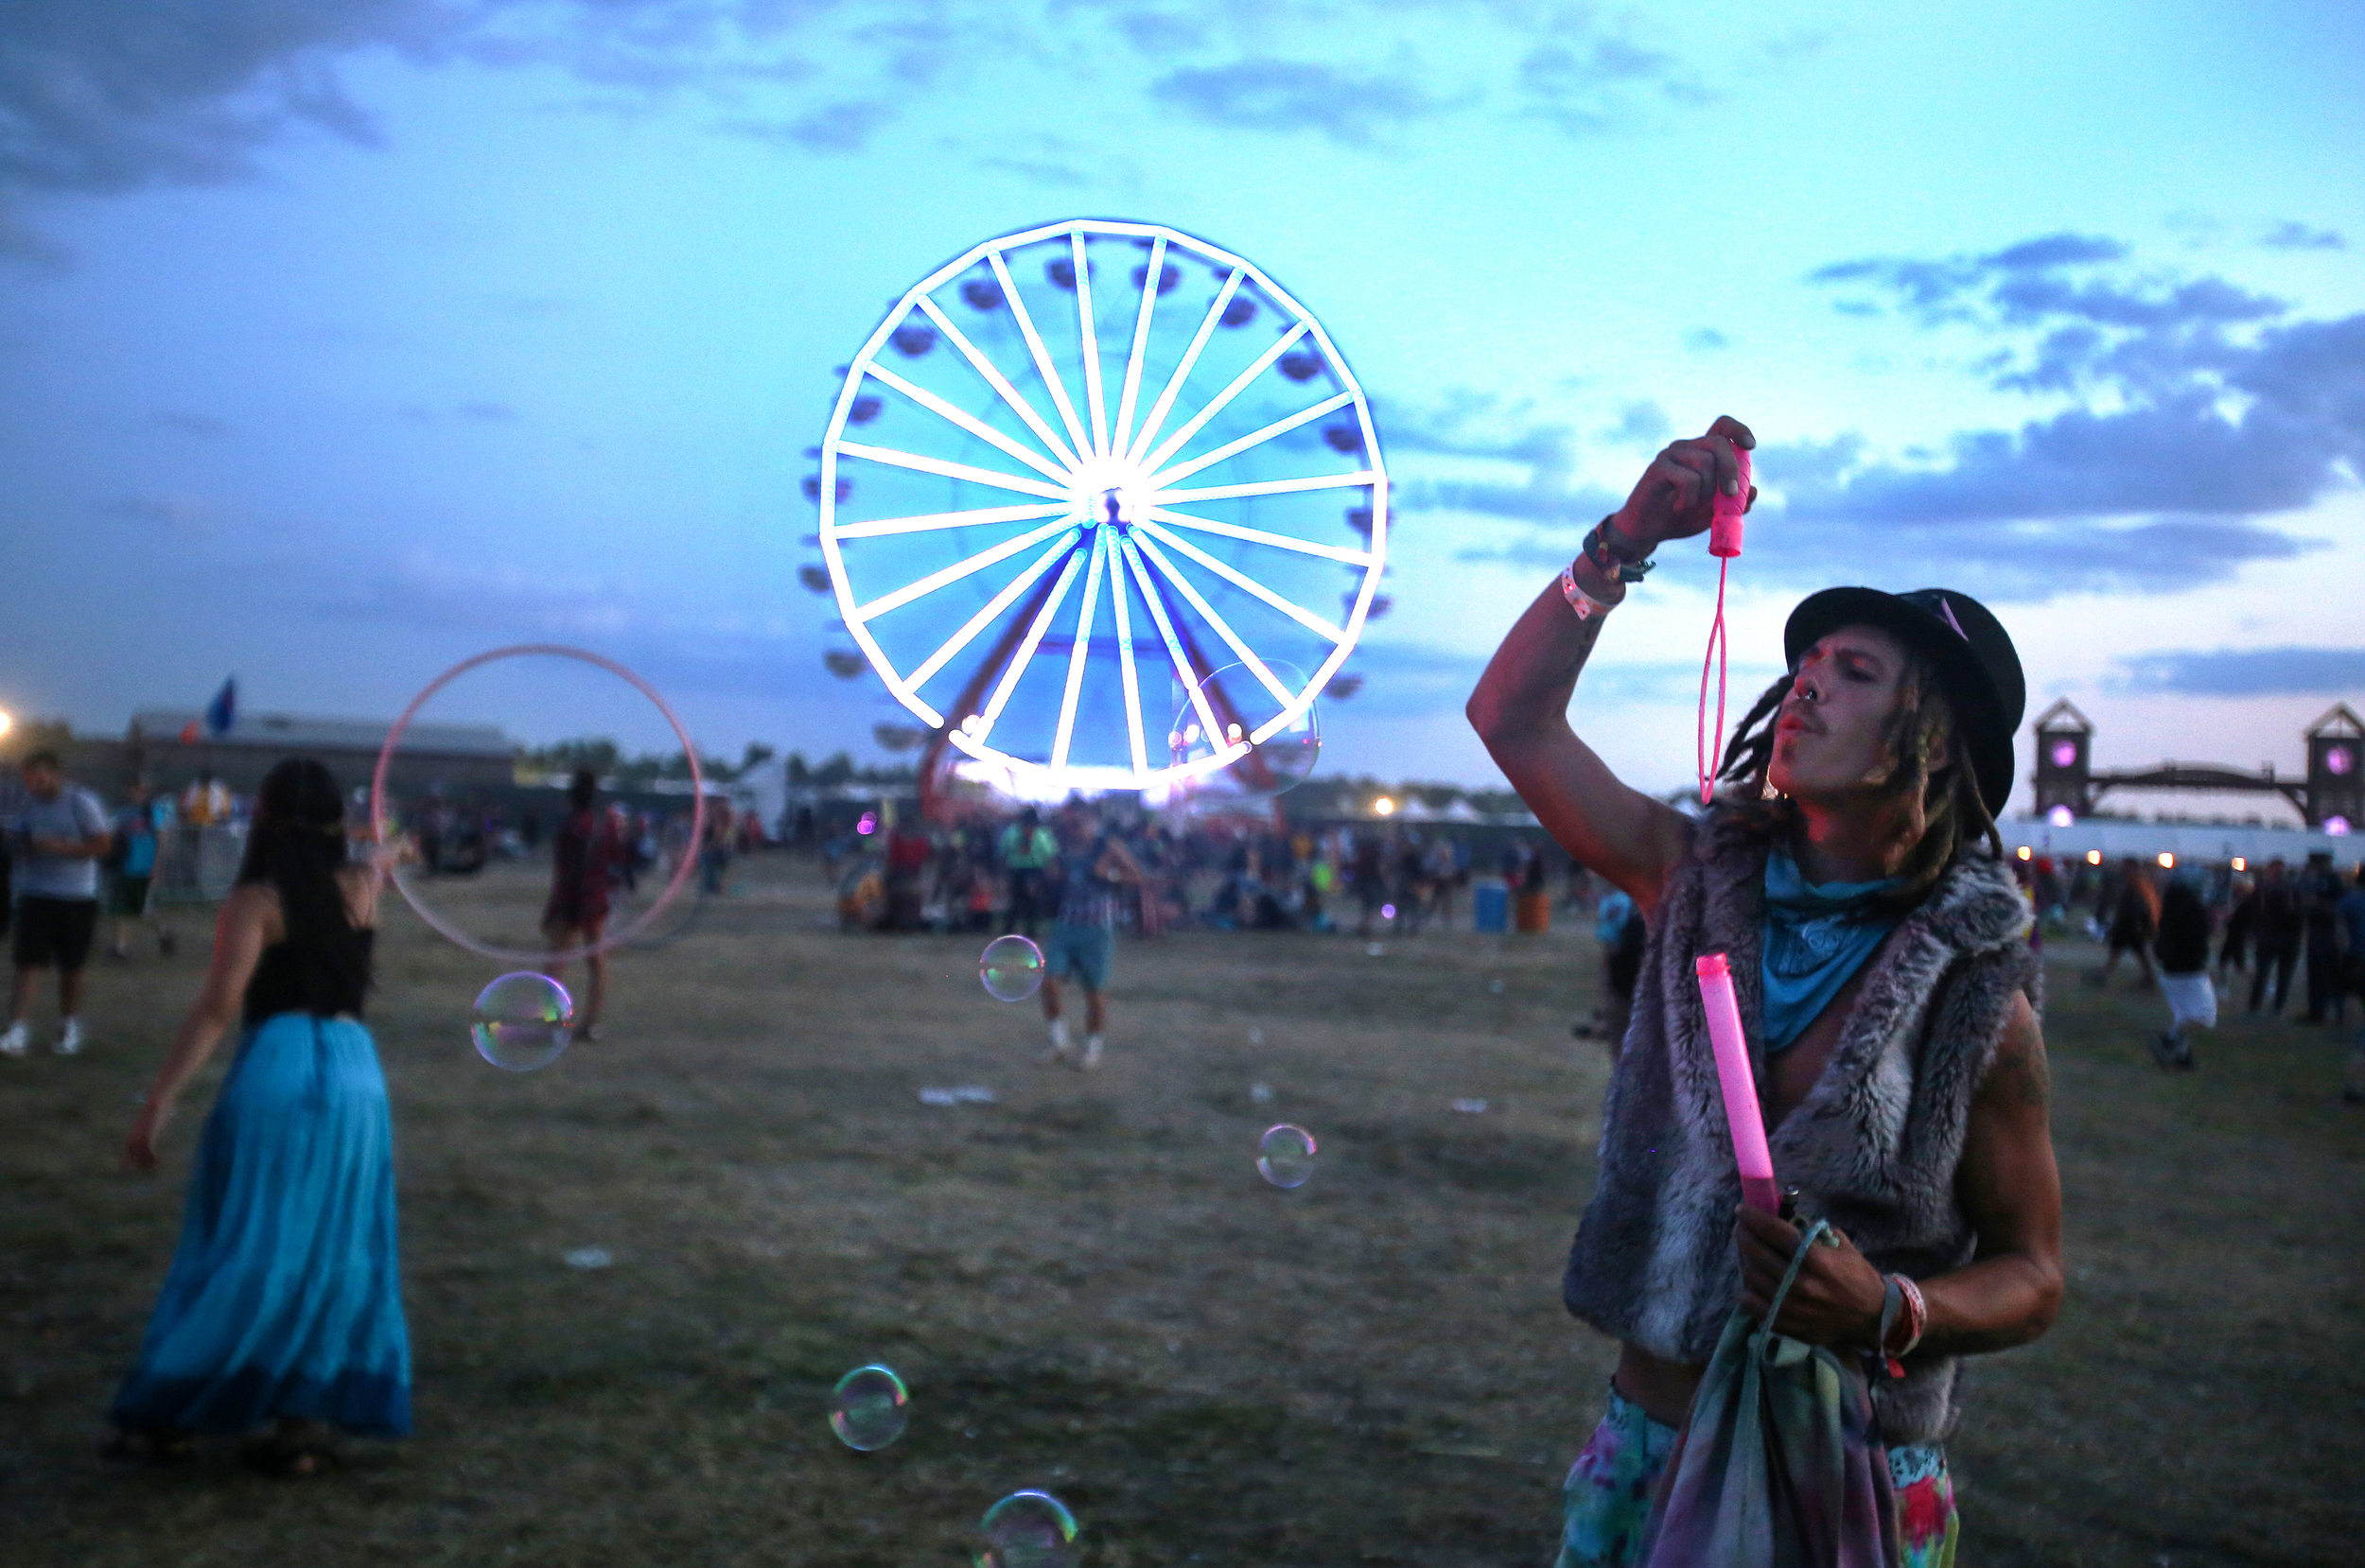 A festival goer blows bubbles as MJ Cole performs at Tripolee in Electric Forest on Saturday, June 27, 2015.